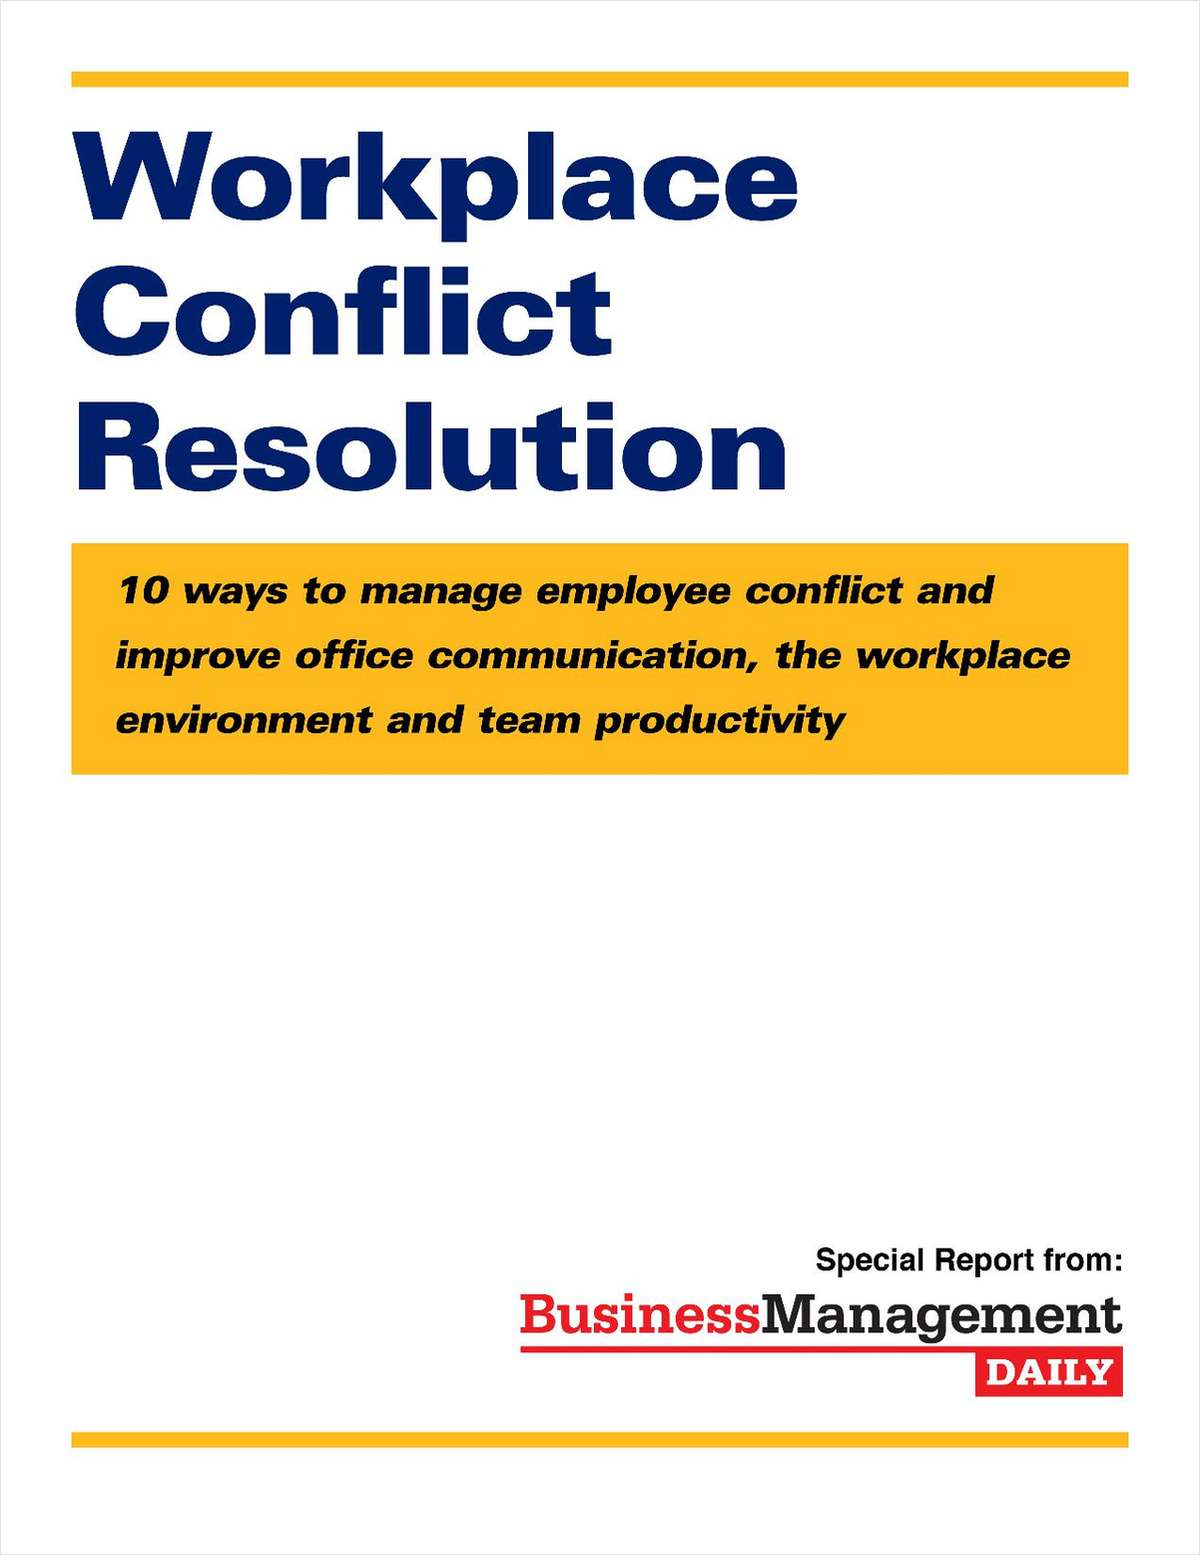 hr conflict resolution State hr professionals site  conflict resolution  techniques, and  practice in resolving work conflicts involving employees, coworkers, supervisors, .